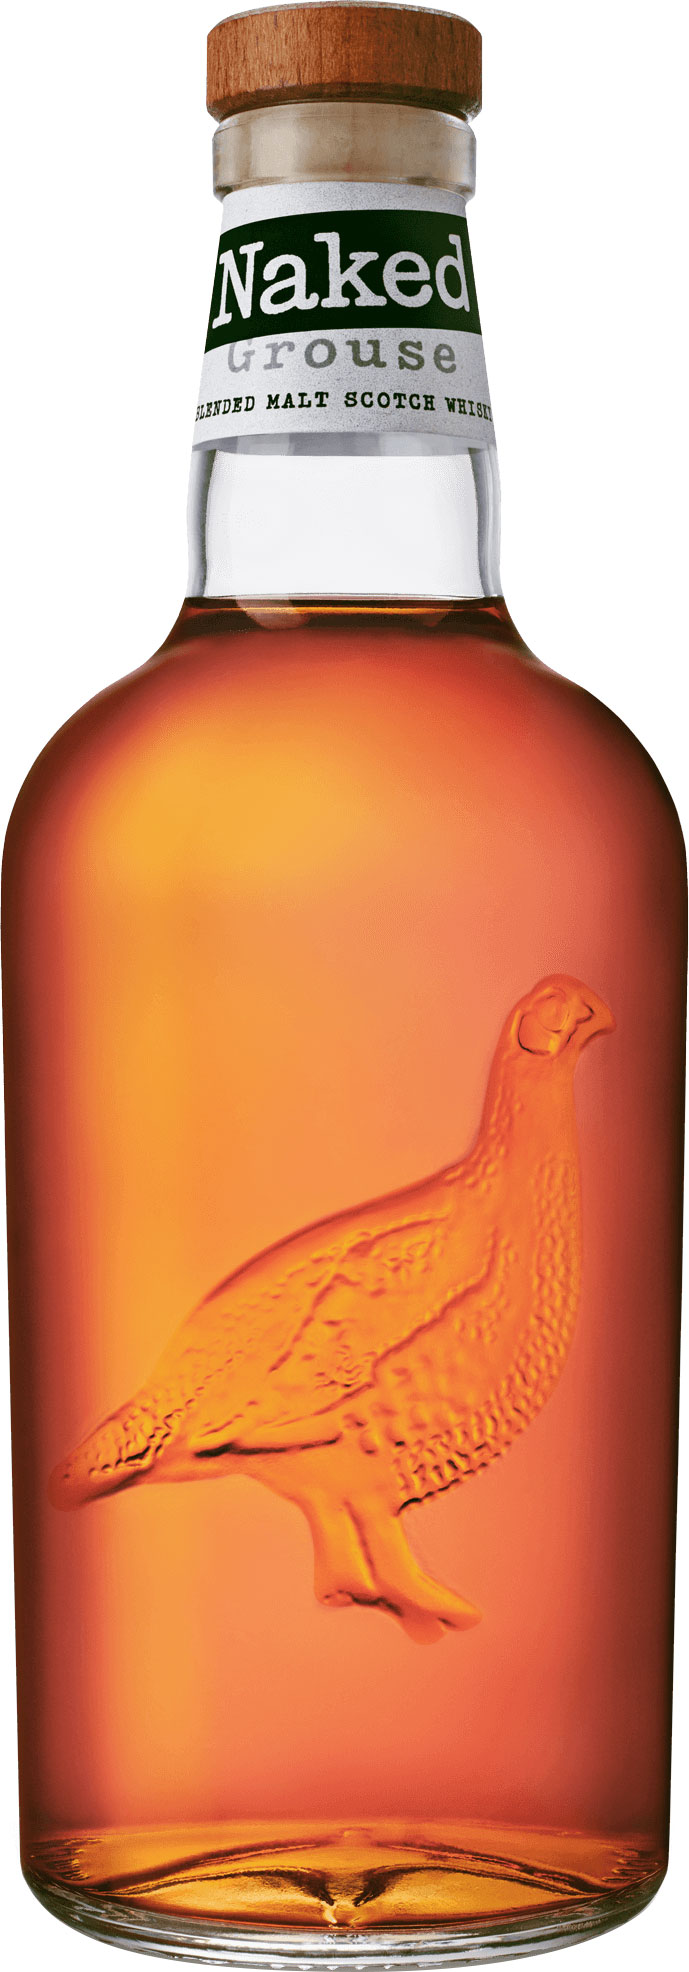 THE NAKED GROUSE 70cl Bottle